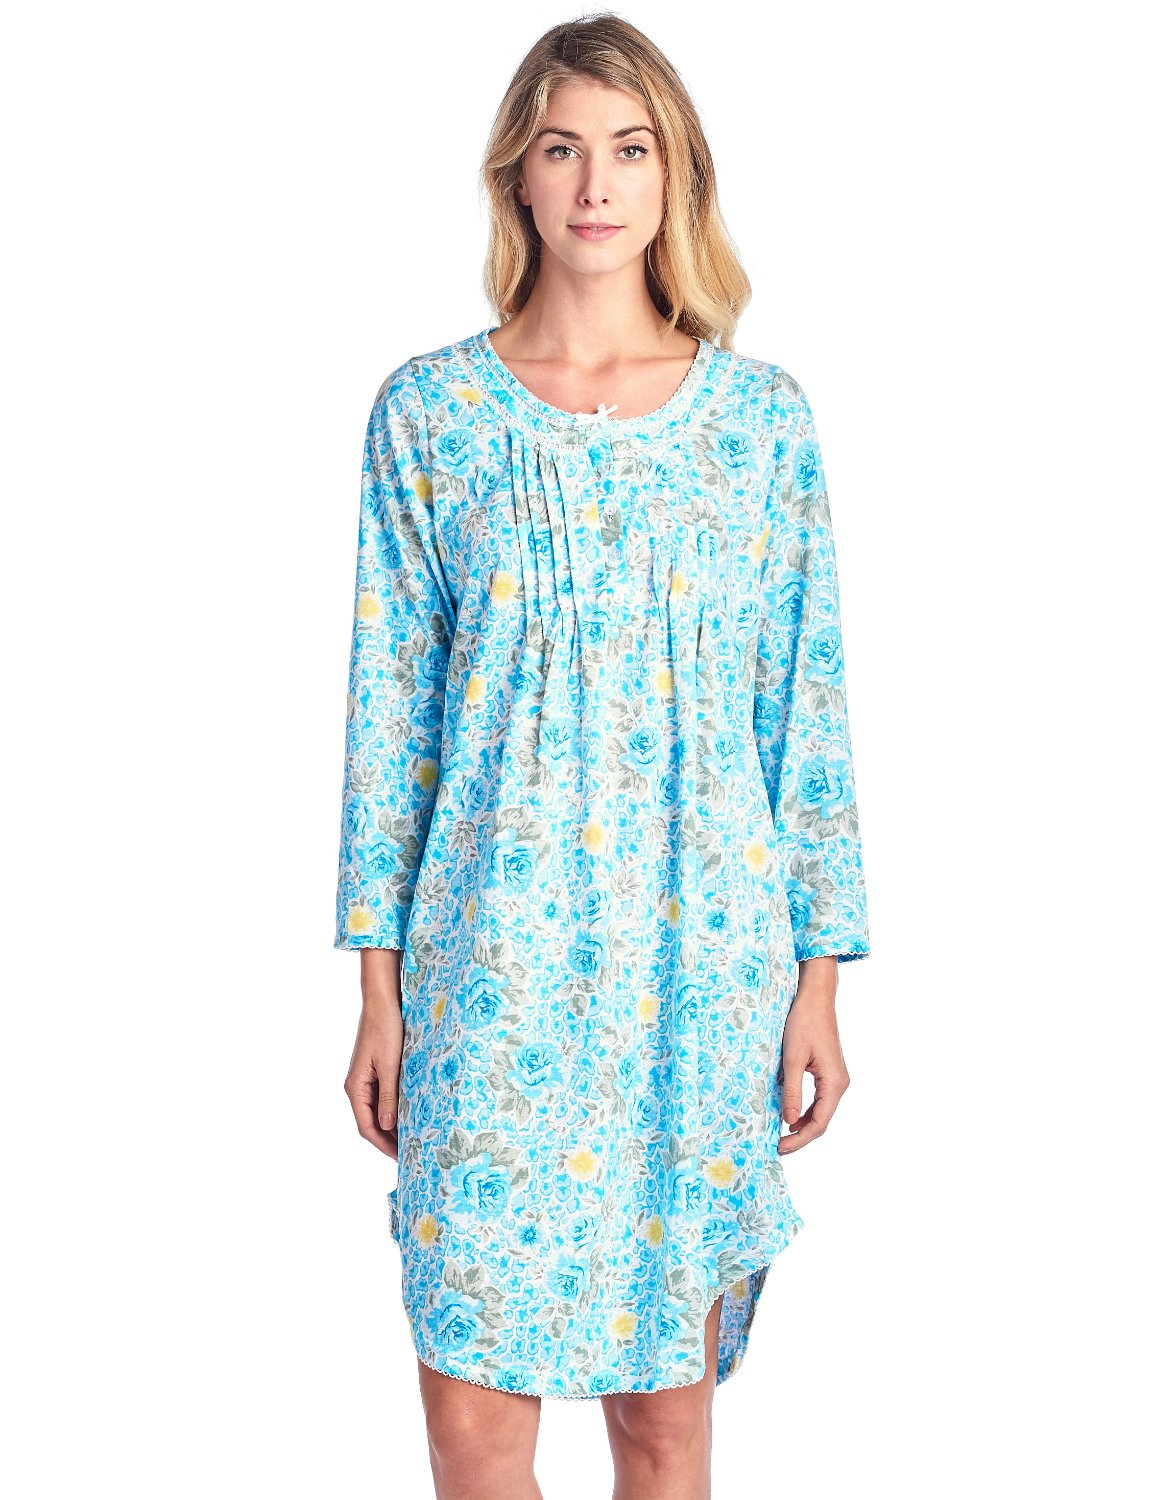 Casual Nights Women's Floral Pintucked Long Sleeve Nightgown - Aqua - Medium by Casual Nights